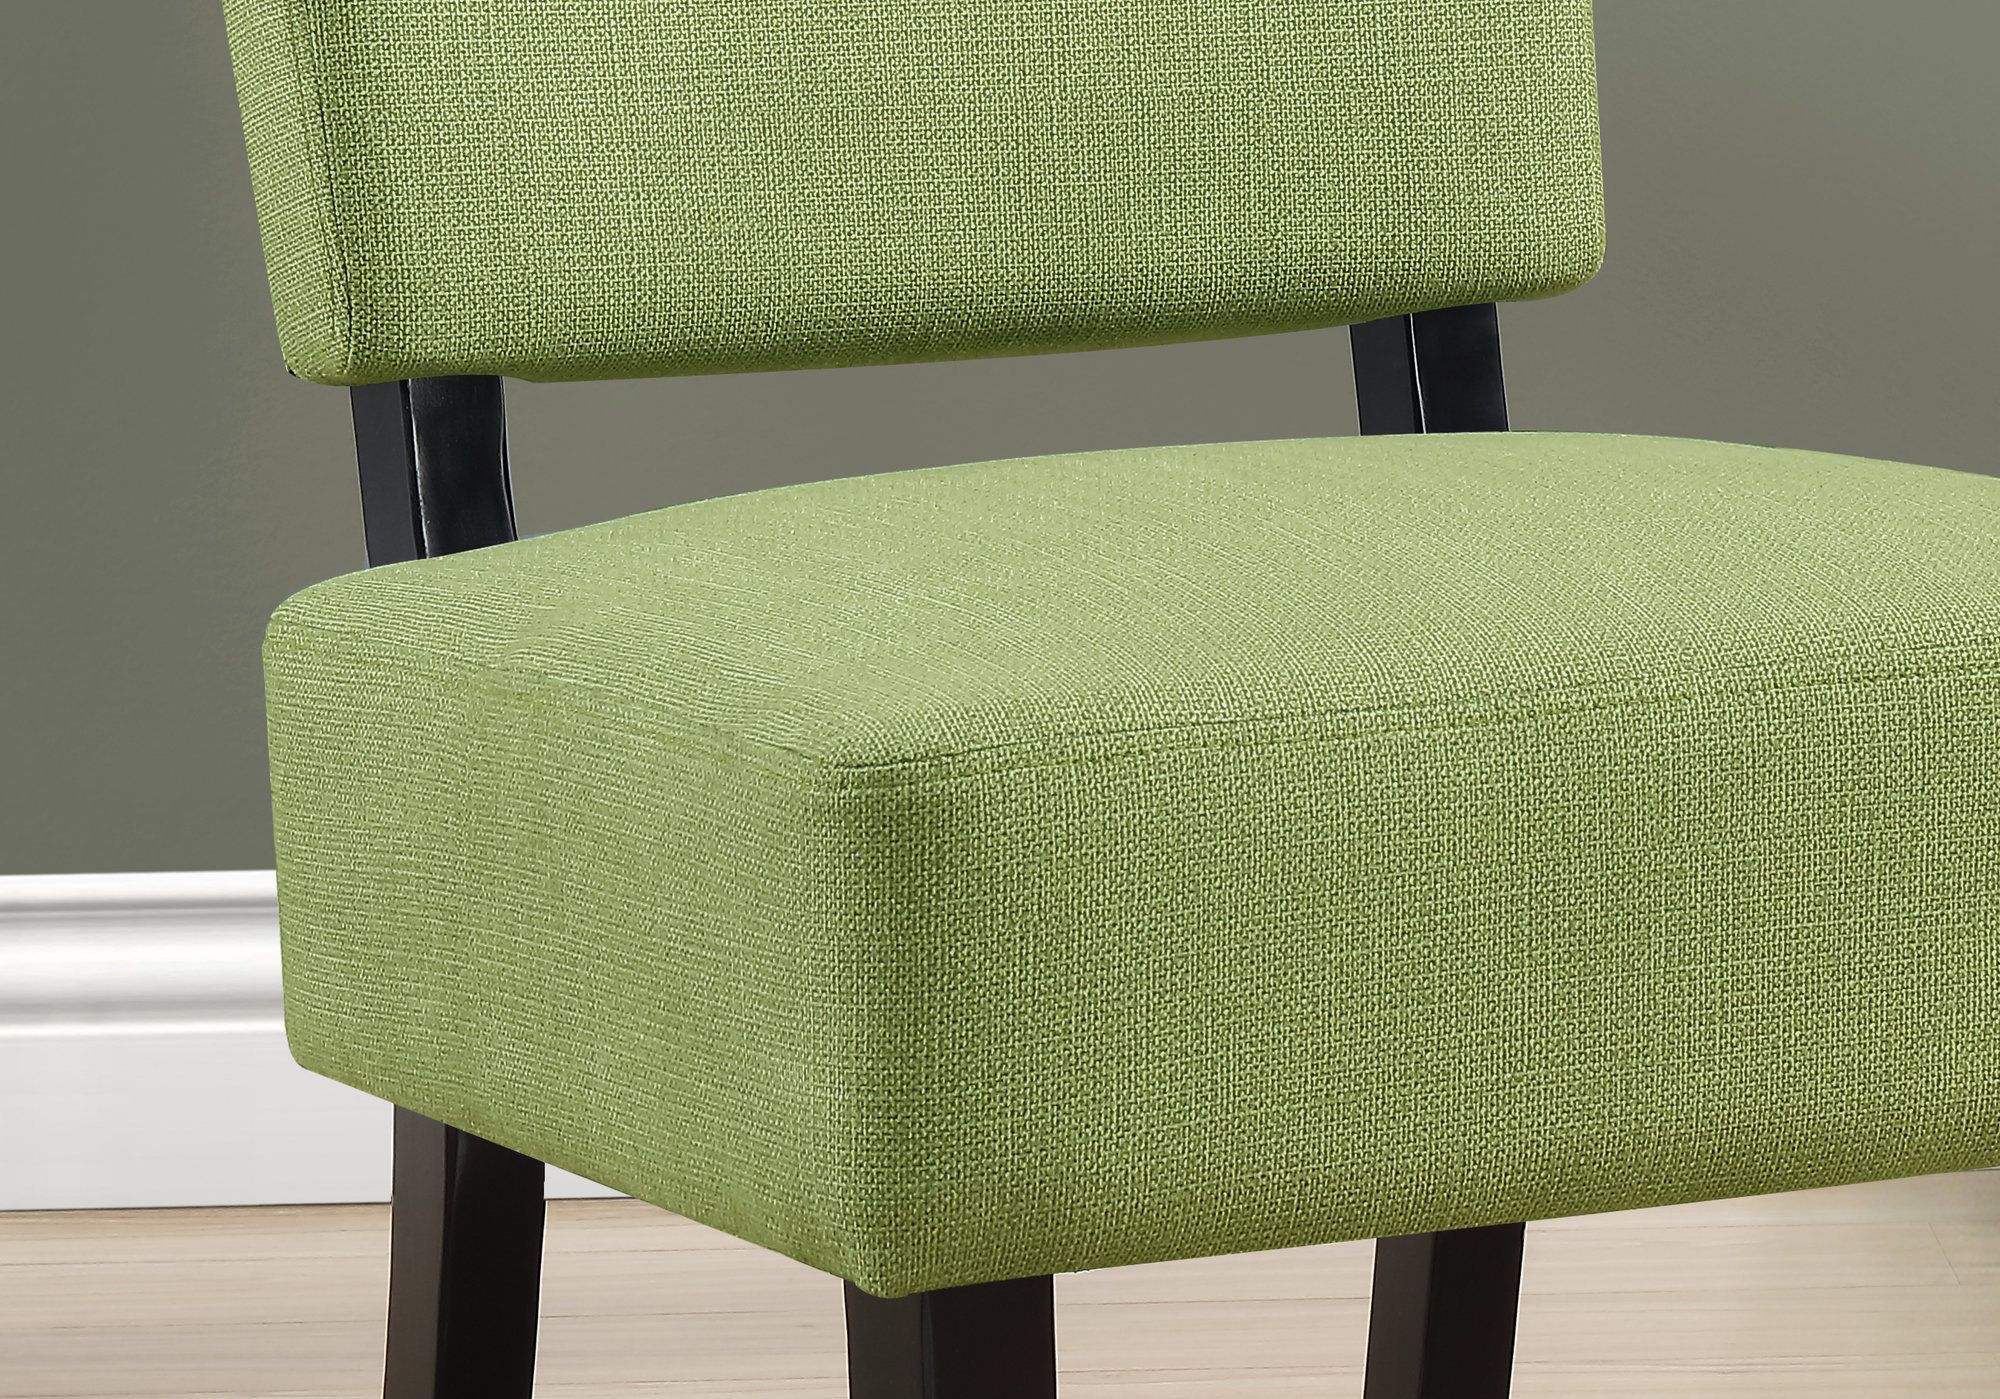 ACCENT CHAIR LIME GREEN FABRIC New lime green modern